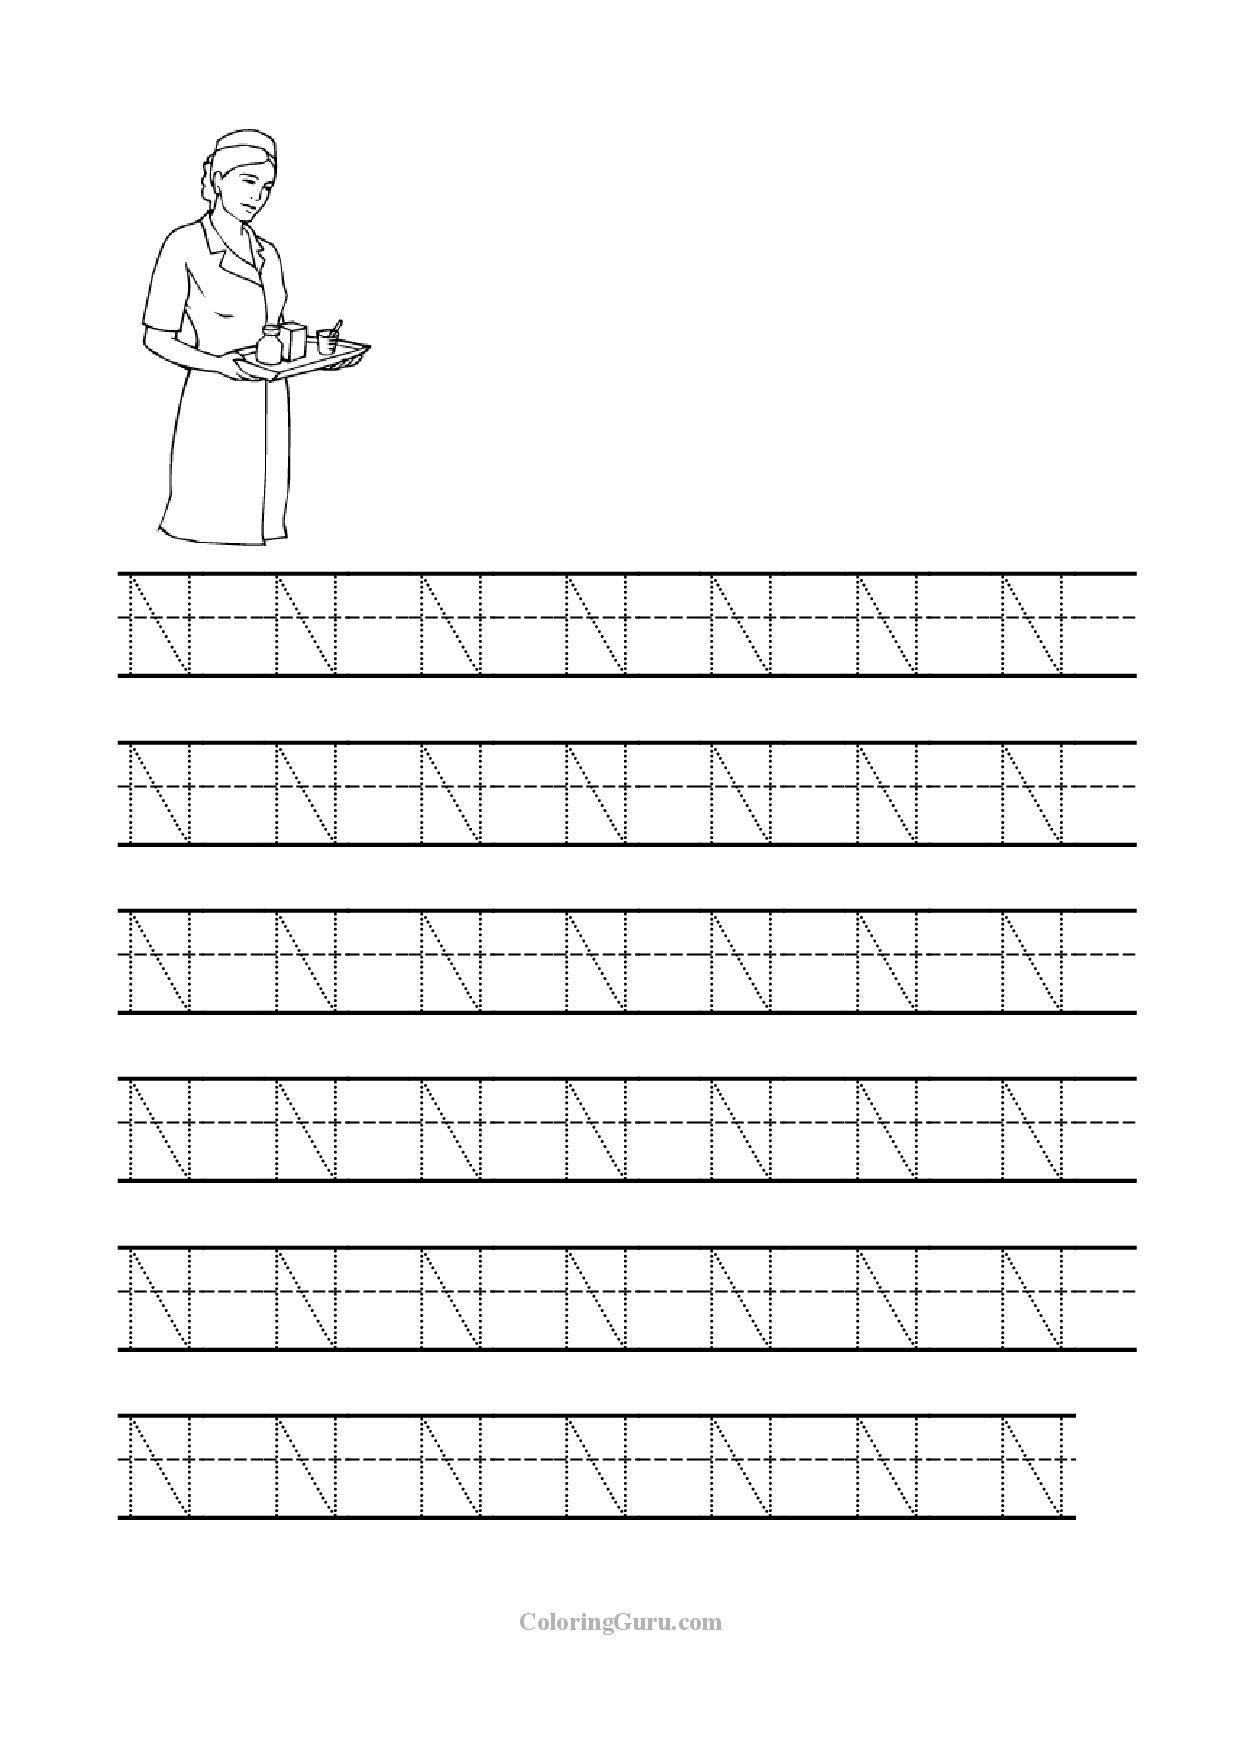 Letter N Tracing Worksheets Preschool Free Printable Tracing Letter N Worksheets for Preschool